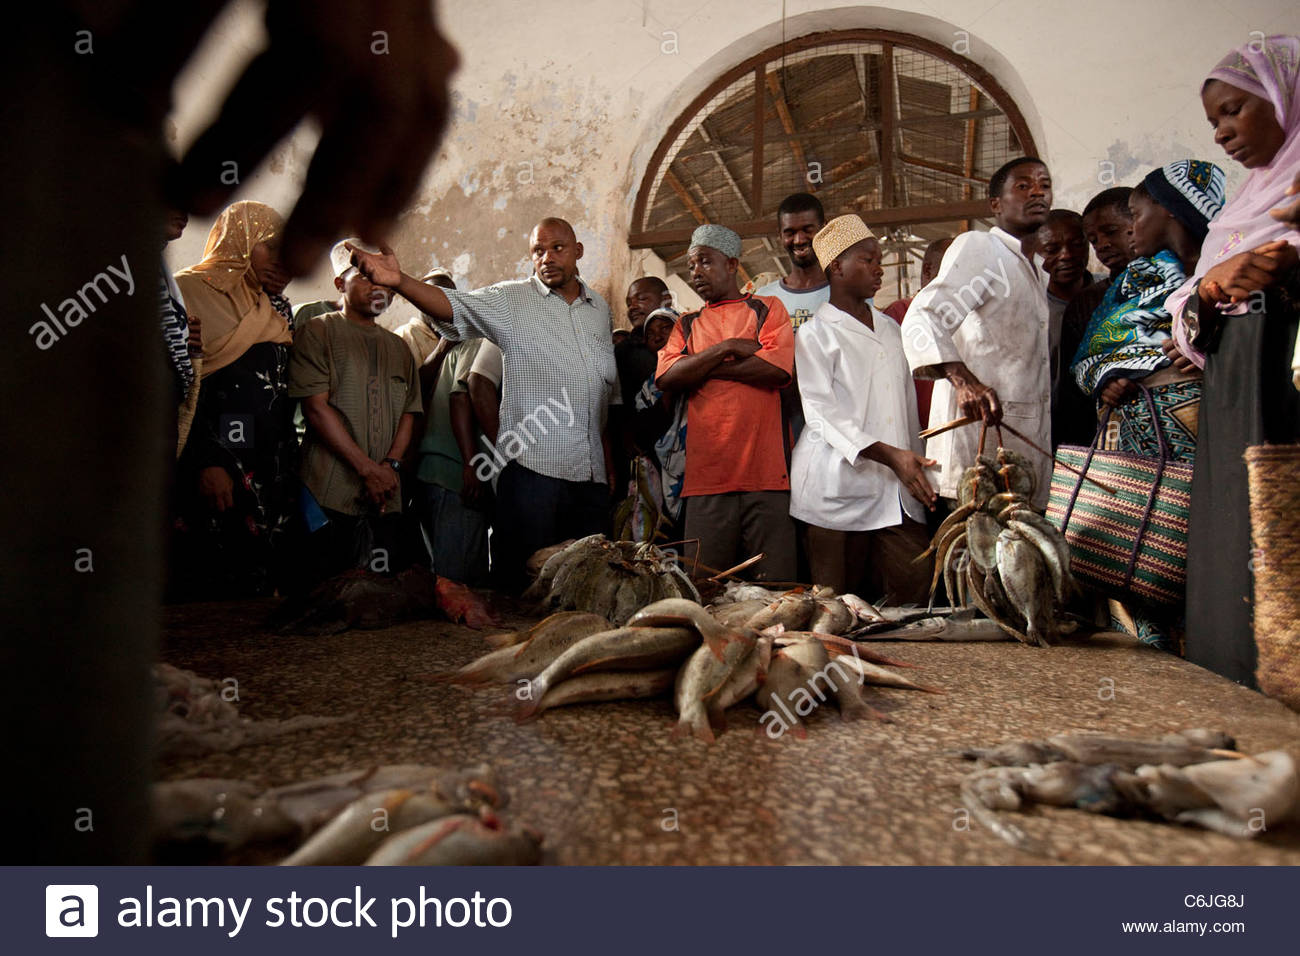 Bundles of fish for sale at the fish auction - Stock Image